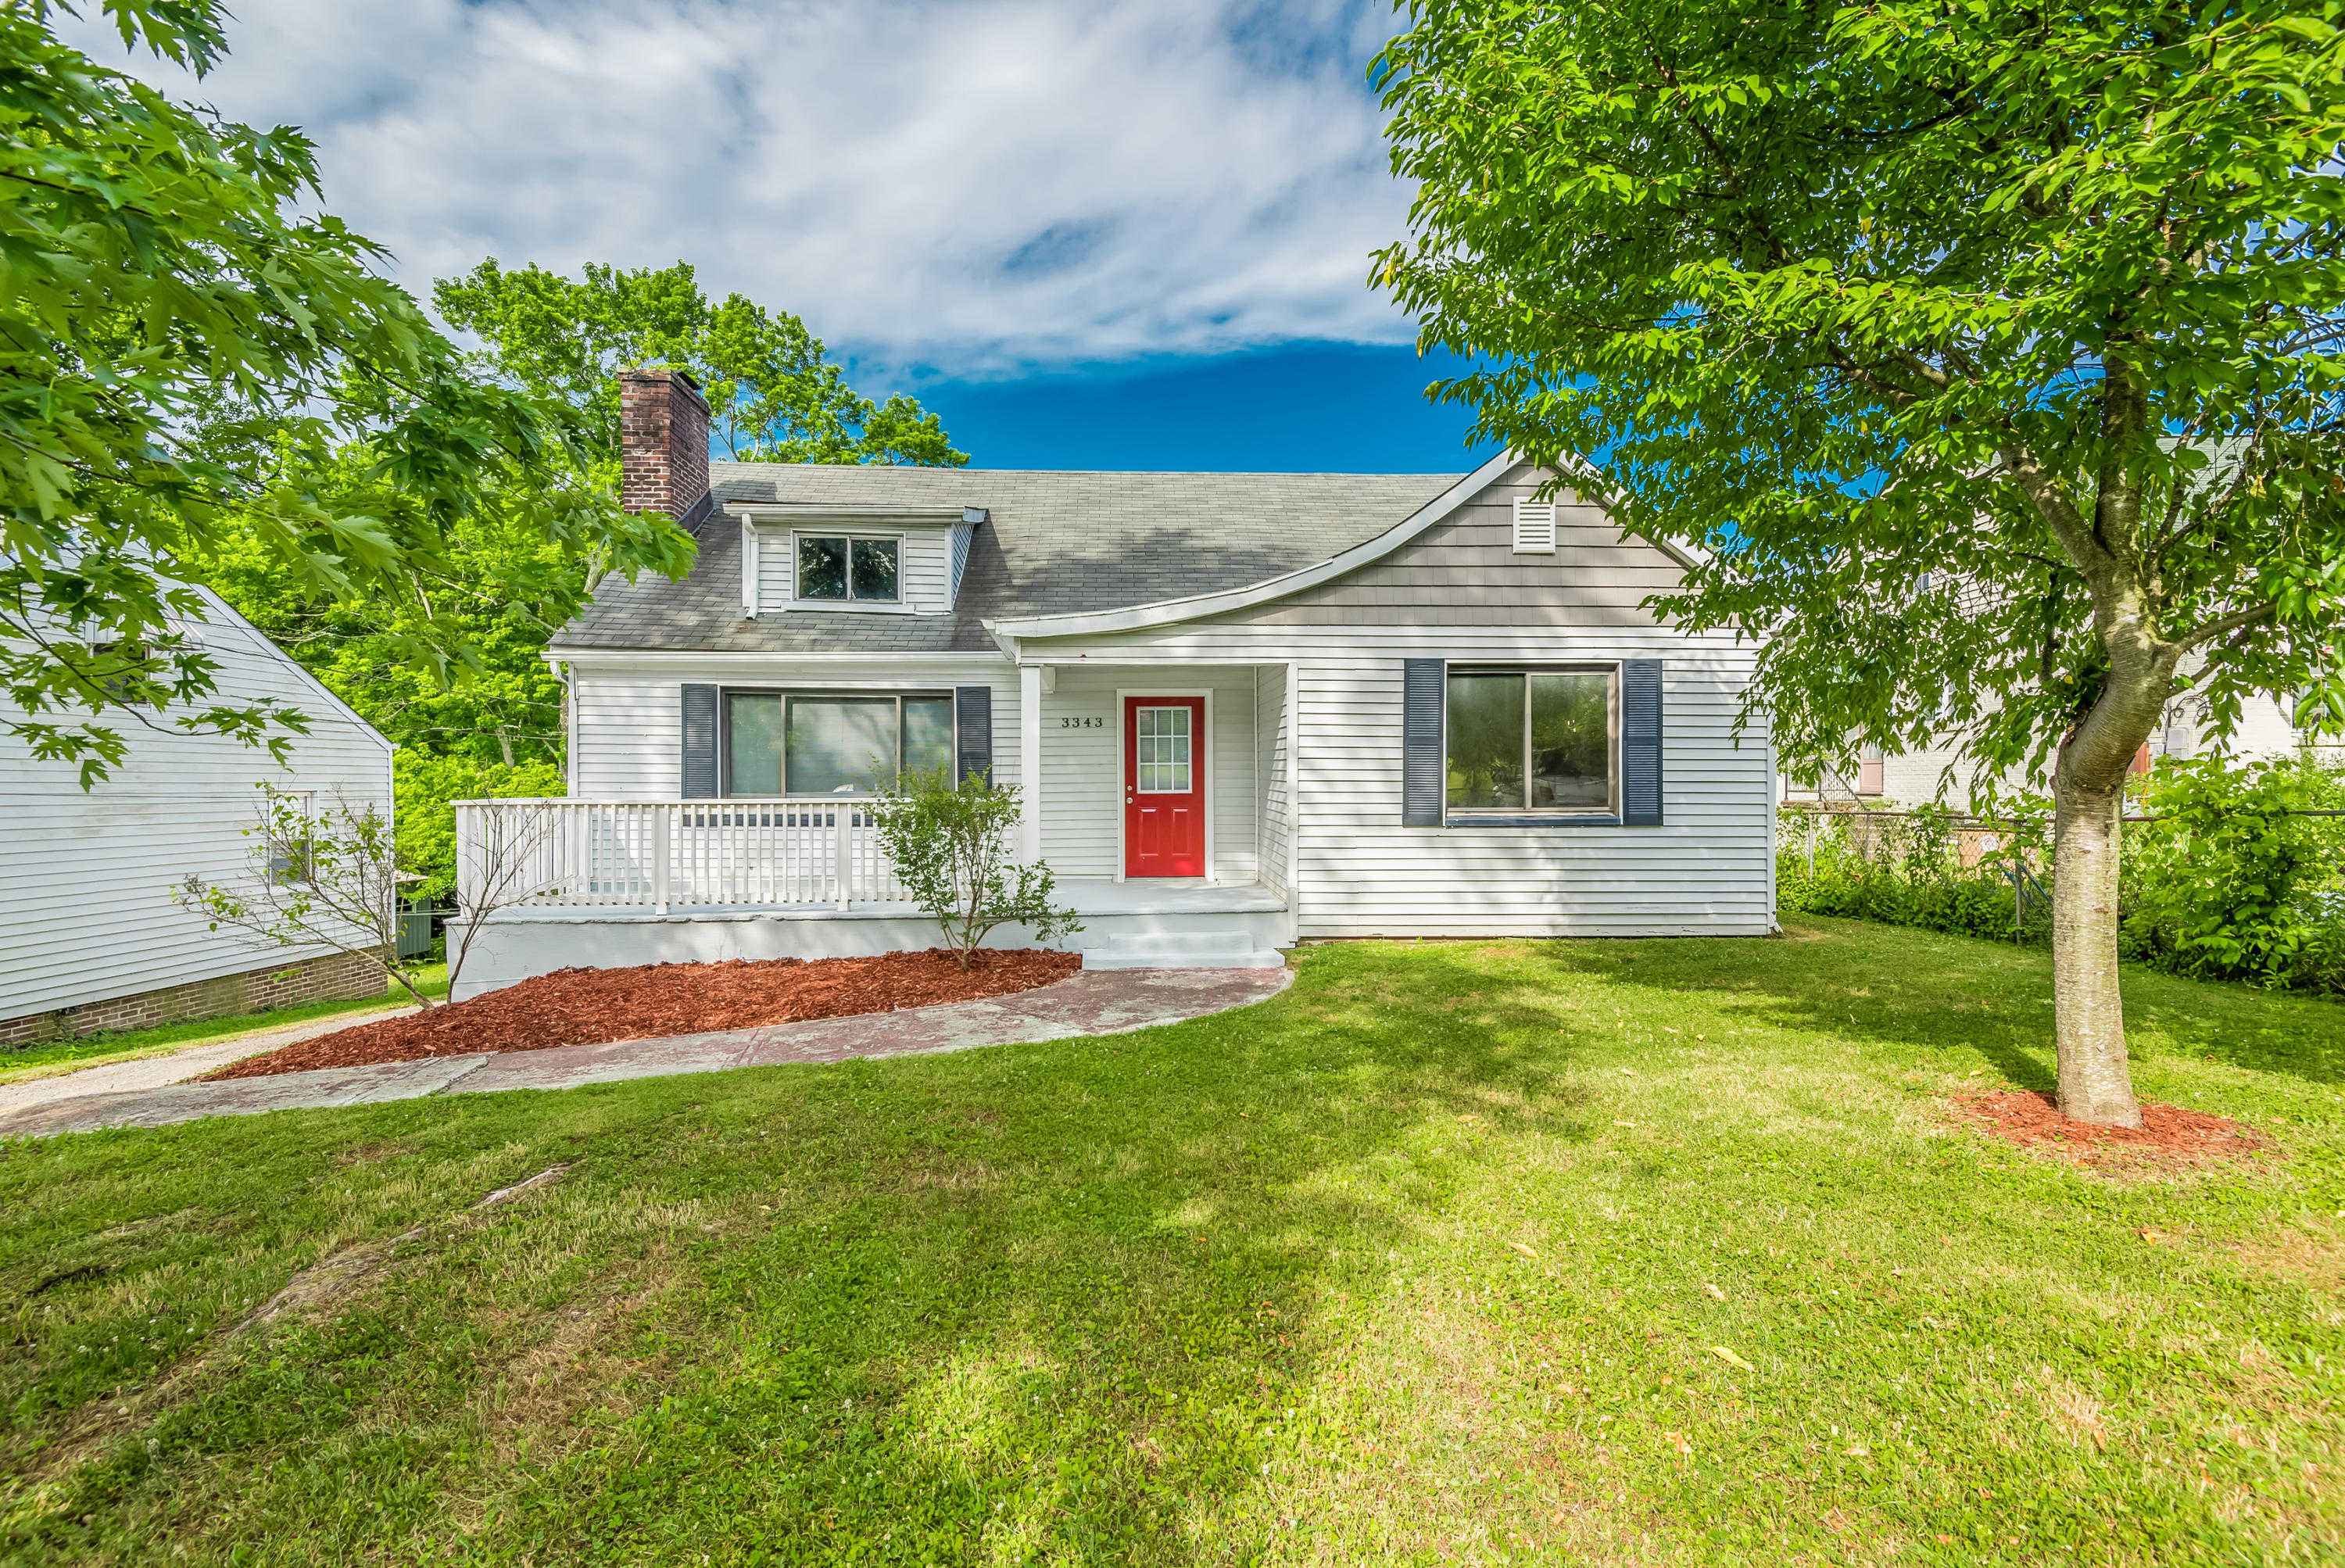 homes for sale in knoxville tn your best move rh garymoss com